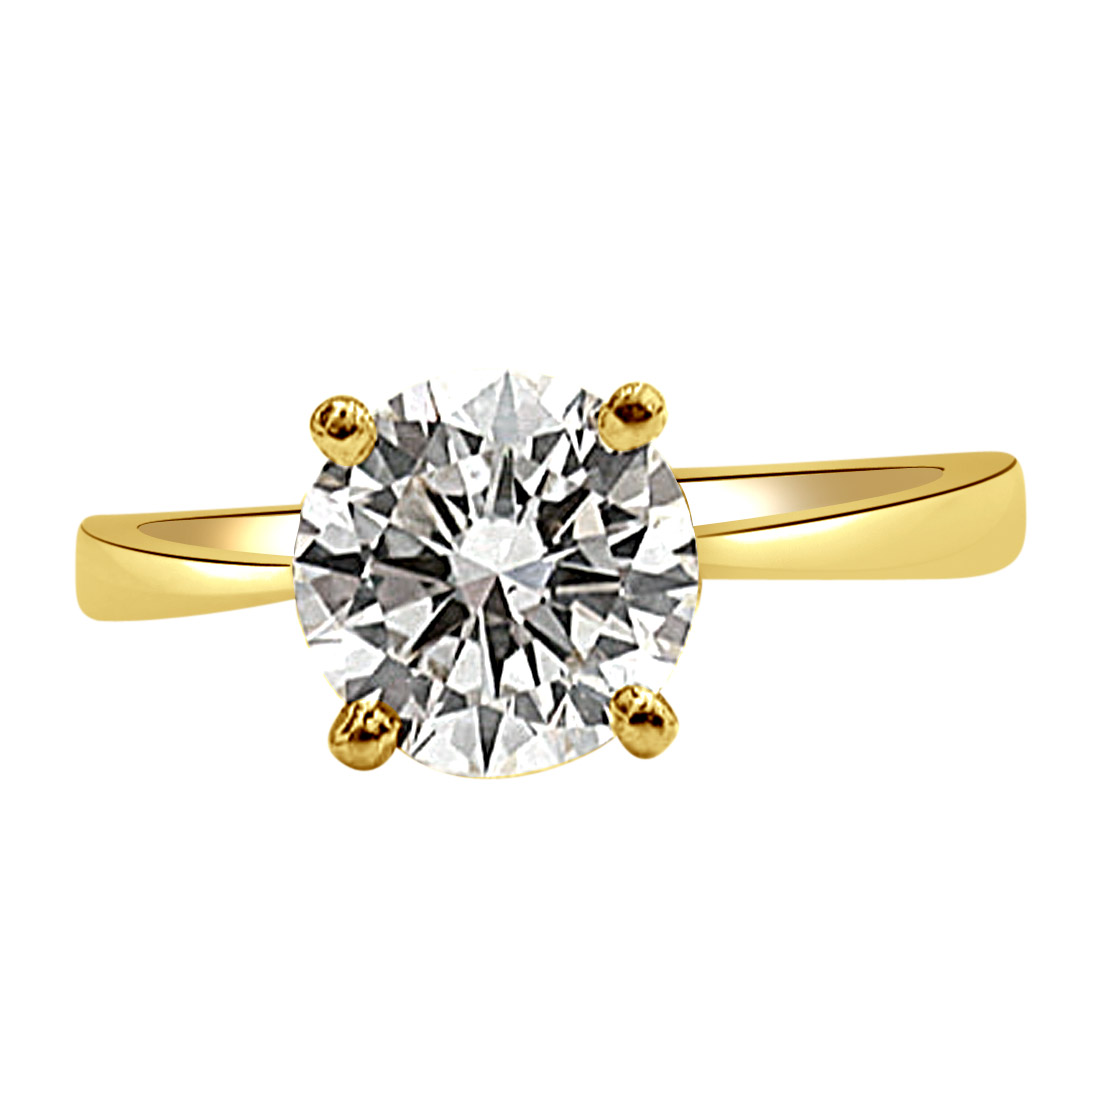 0.11cts J-K / SI2 Solitaire Diamond  4 Prong Ring in 18K Gold